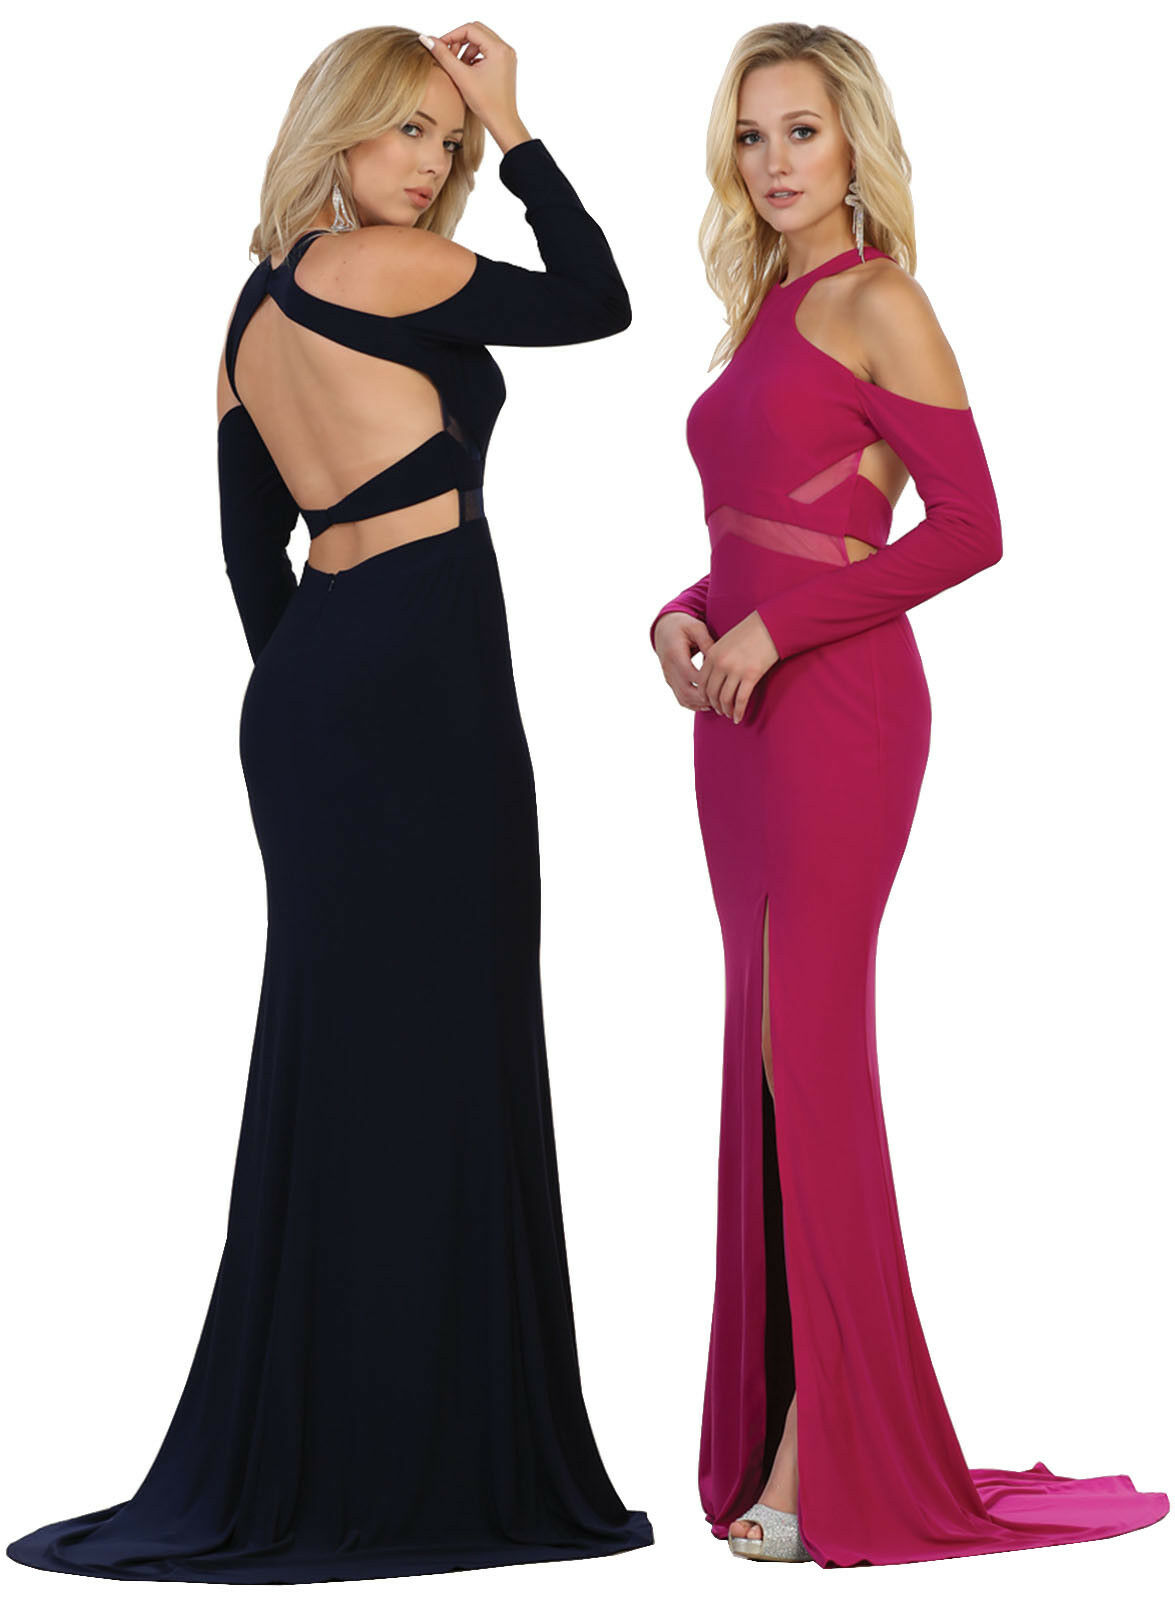 Long Sleeve Stretchy Lace Dress Red Carpet Prom Party Formal Evening ...